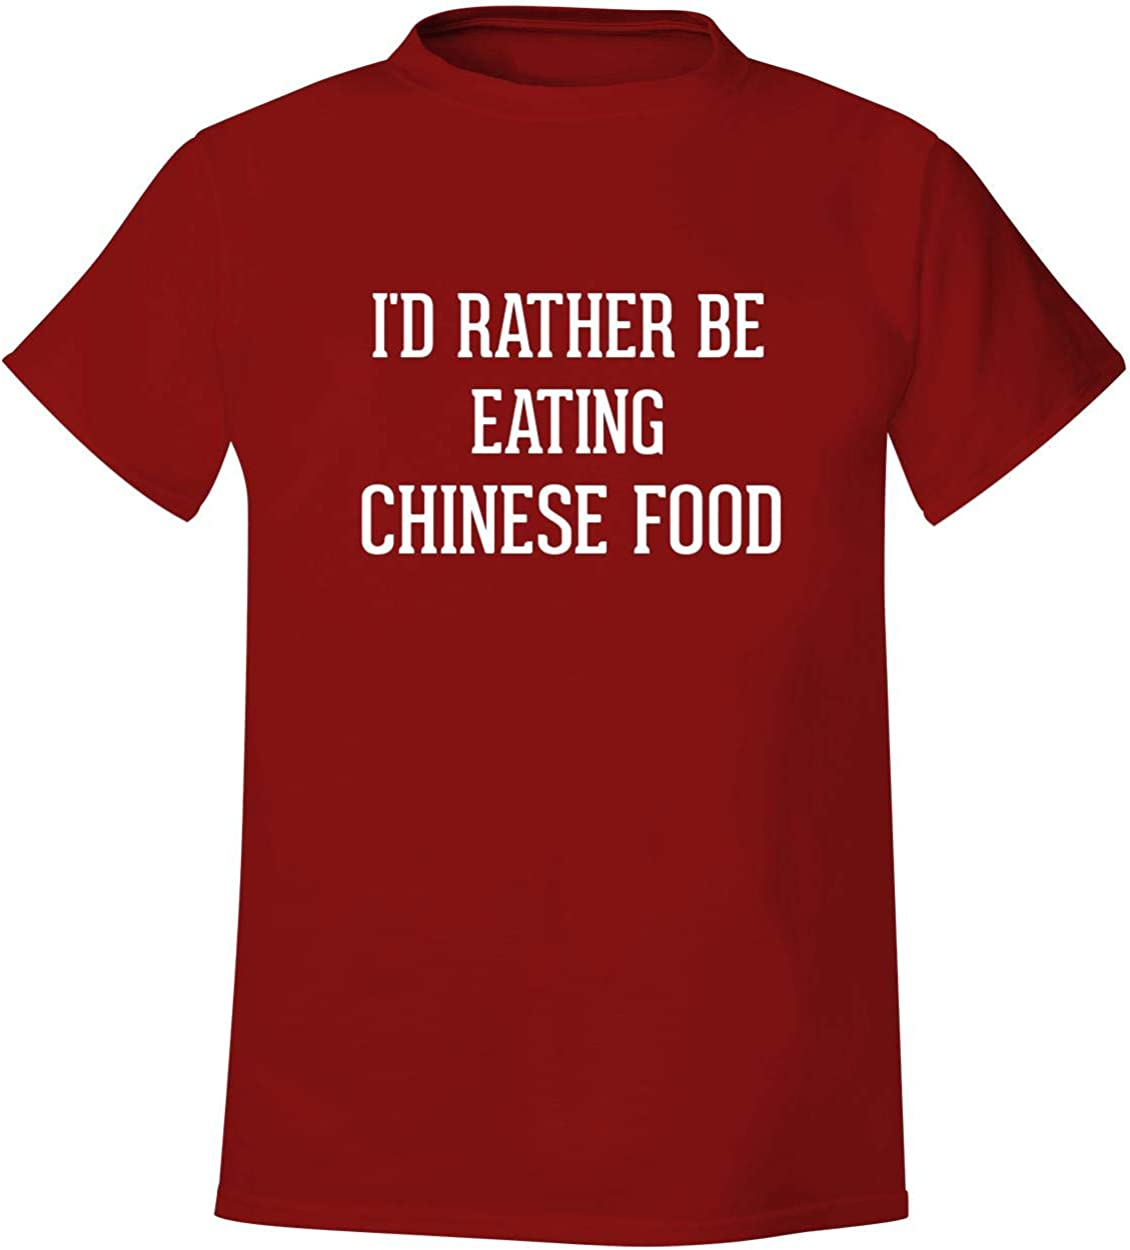 I'd Rather Be Eating CHINESE FOOD - Men's Soft & Comfortable T-Shirt